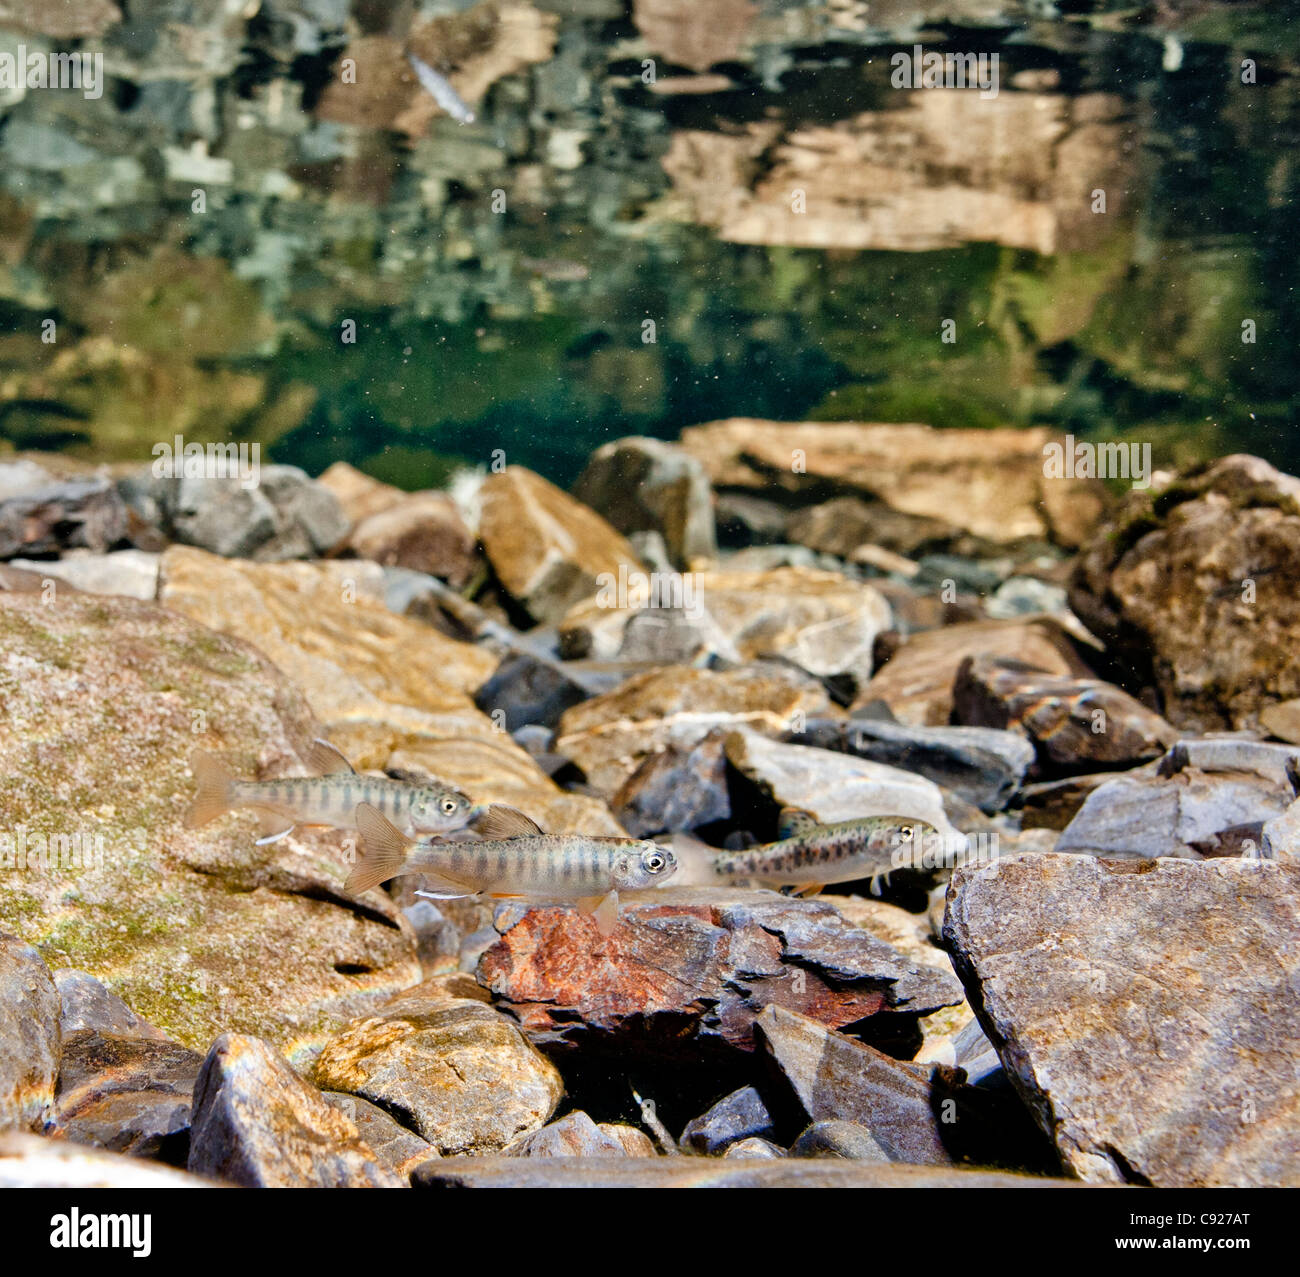 Underwater view of a Coho salmon fry rearing with a juvenile coastal Cutthroat trout in Eccles Creek, Alaska - Stock Image